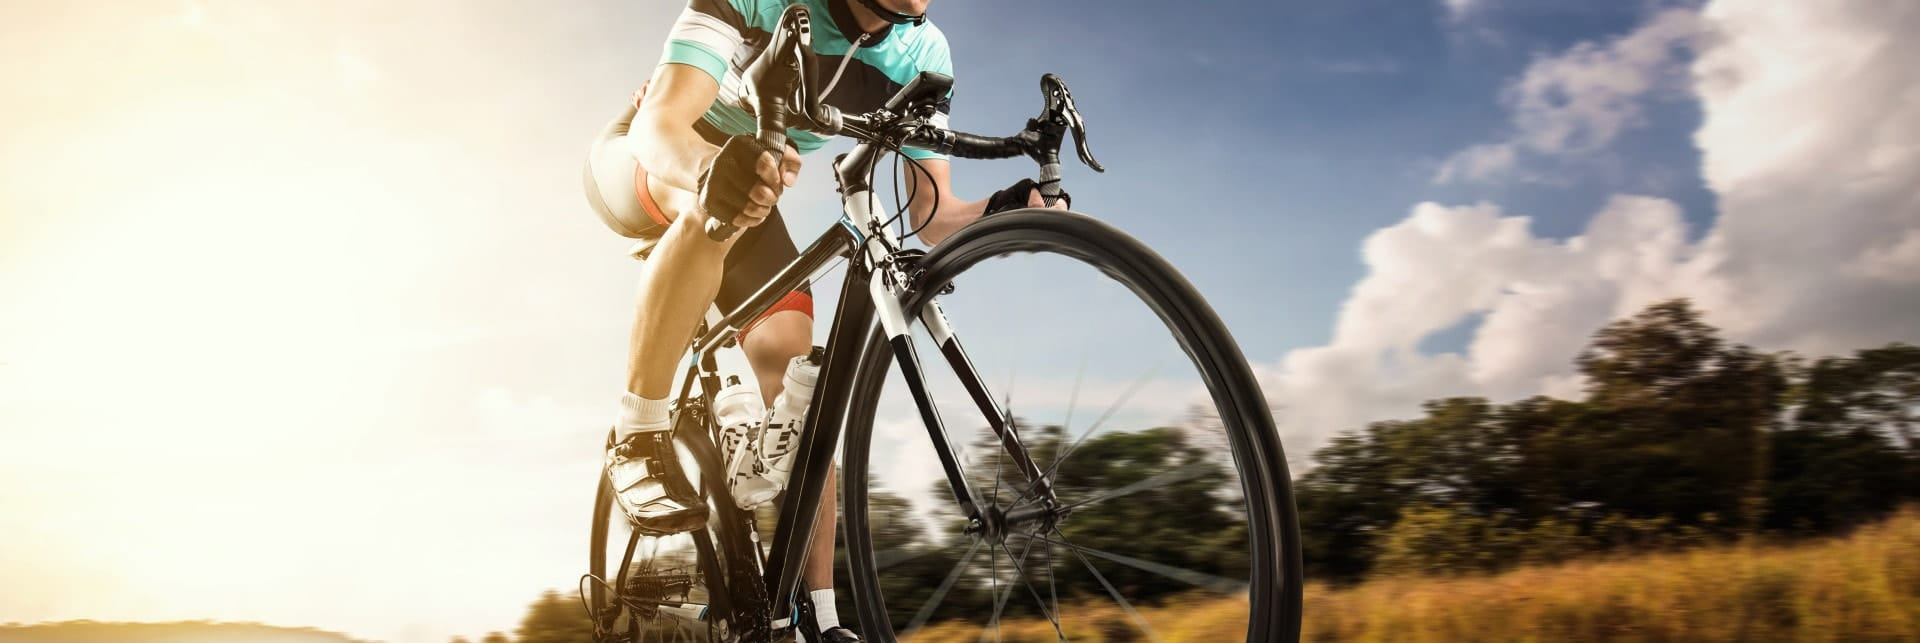 Cycling Image